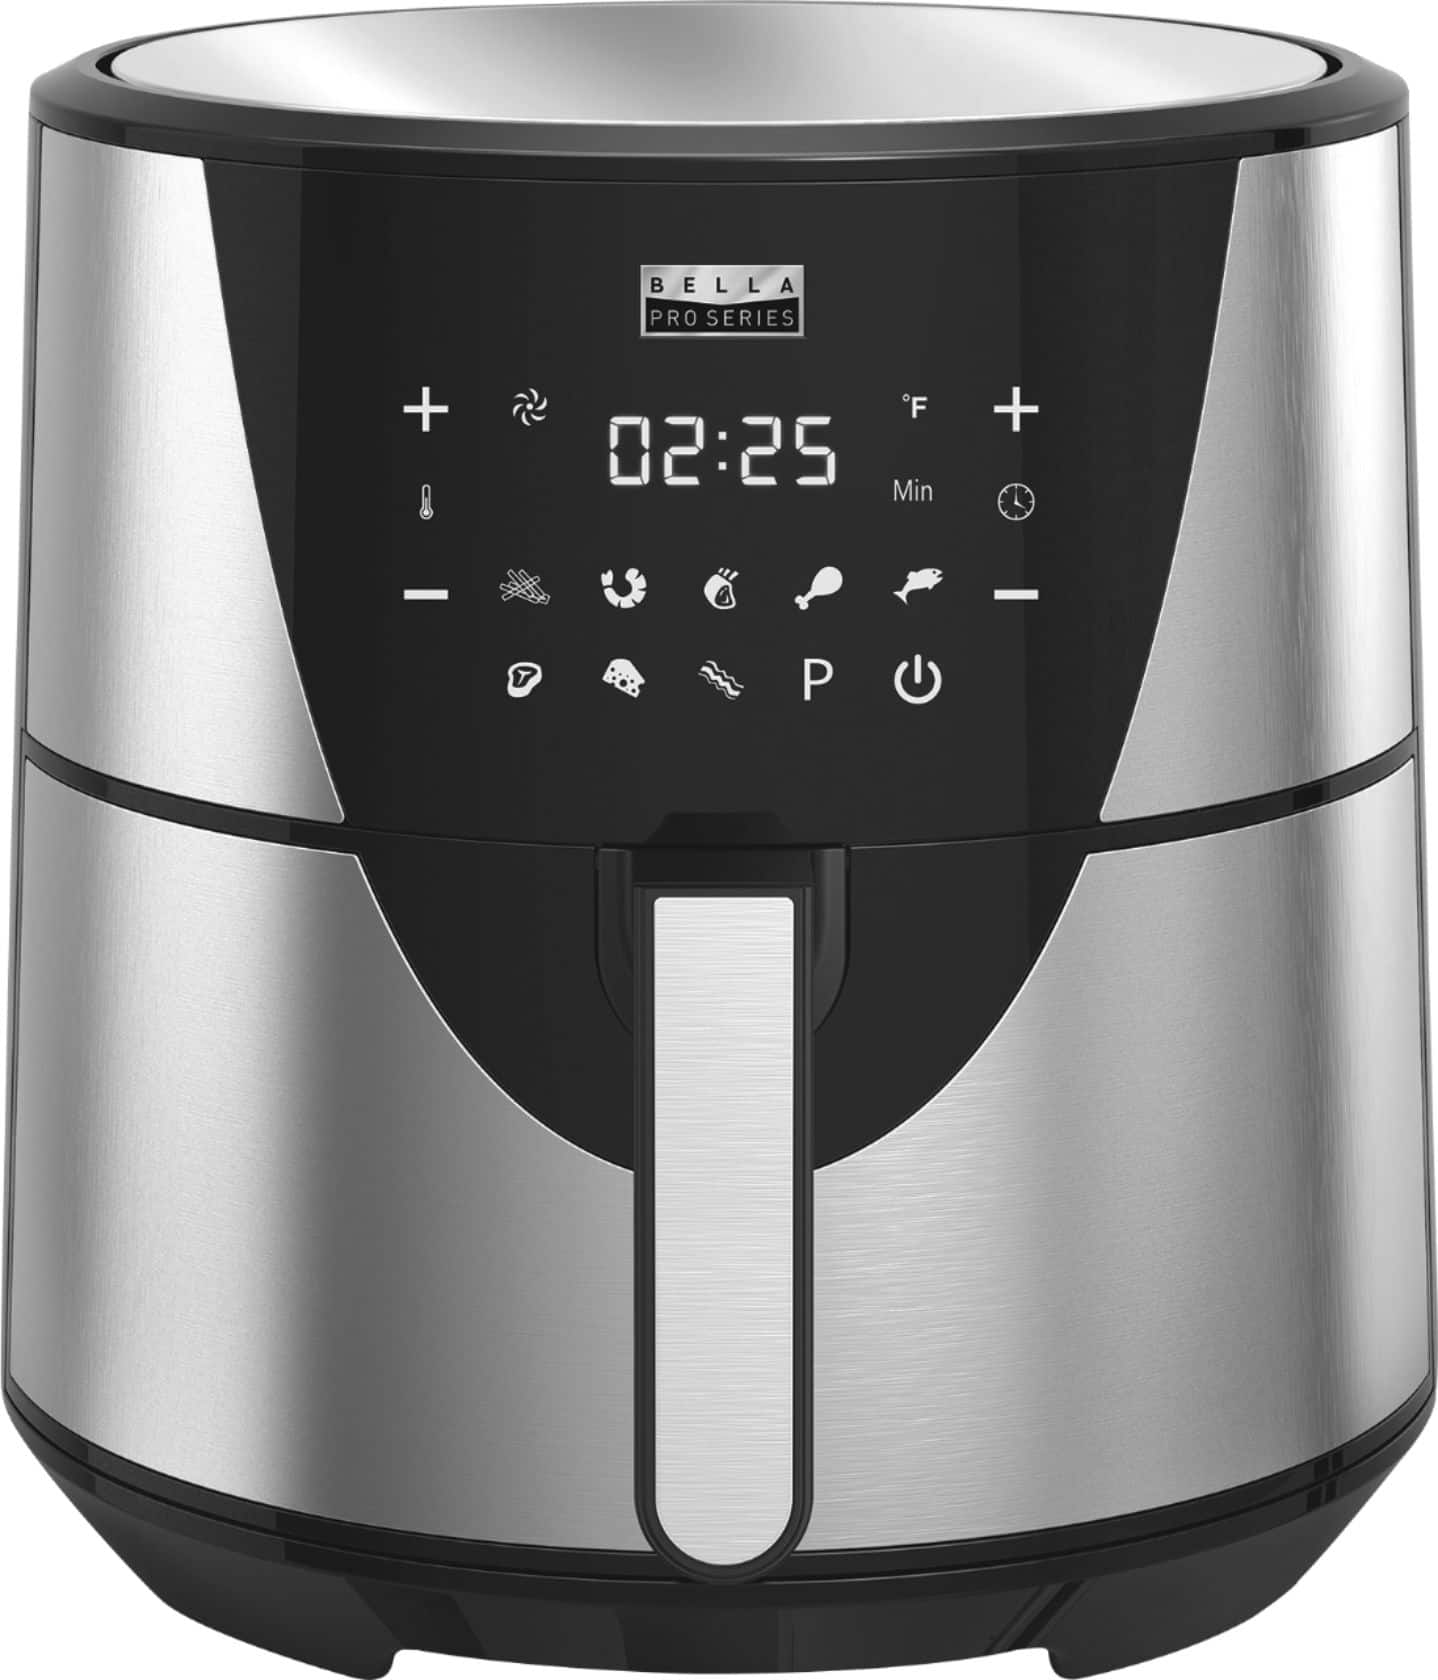 Bella Pro Series 90088 8 Qt Digital Air Fryer $69.99 at Best Buy